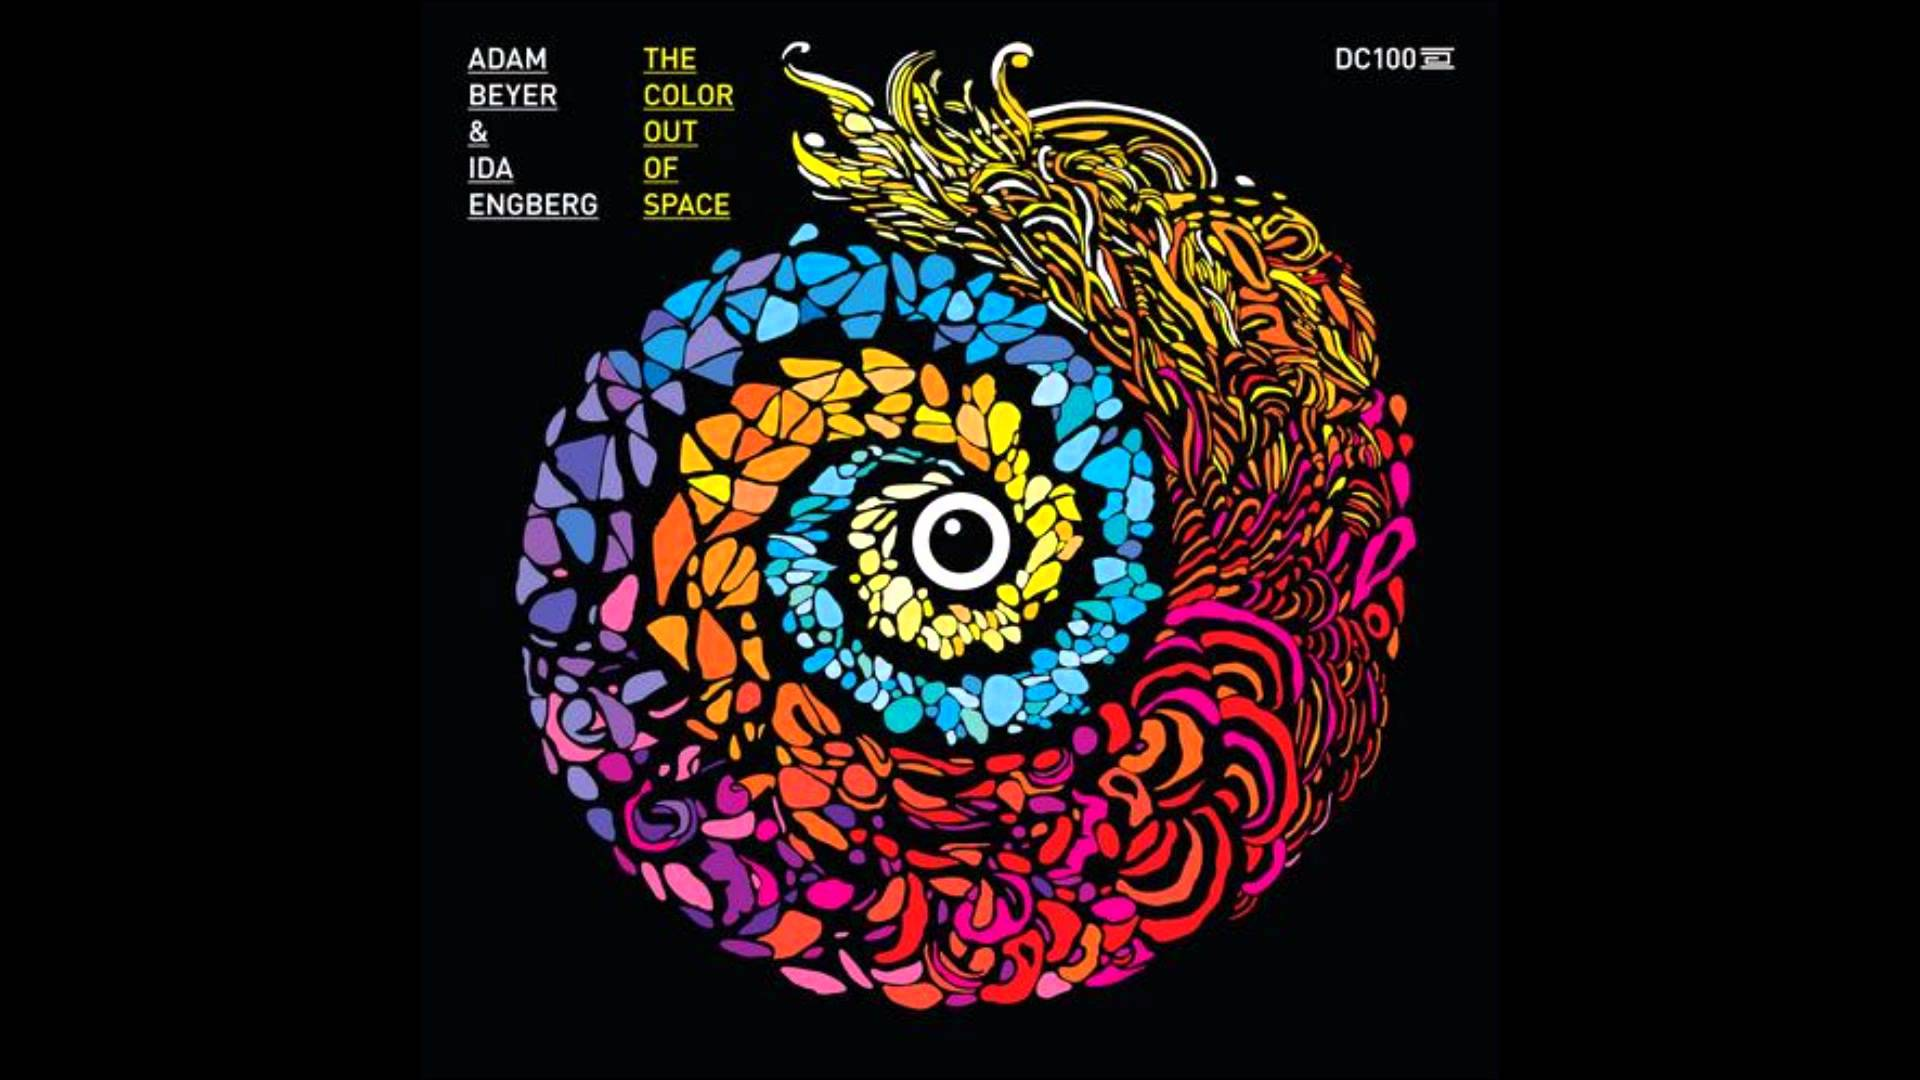 Adam Beyer - The Color Out Of Space (Original Mix)